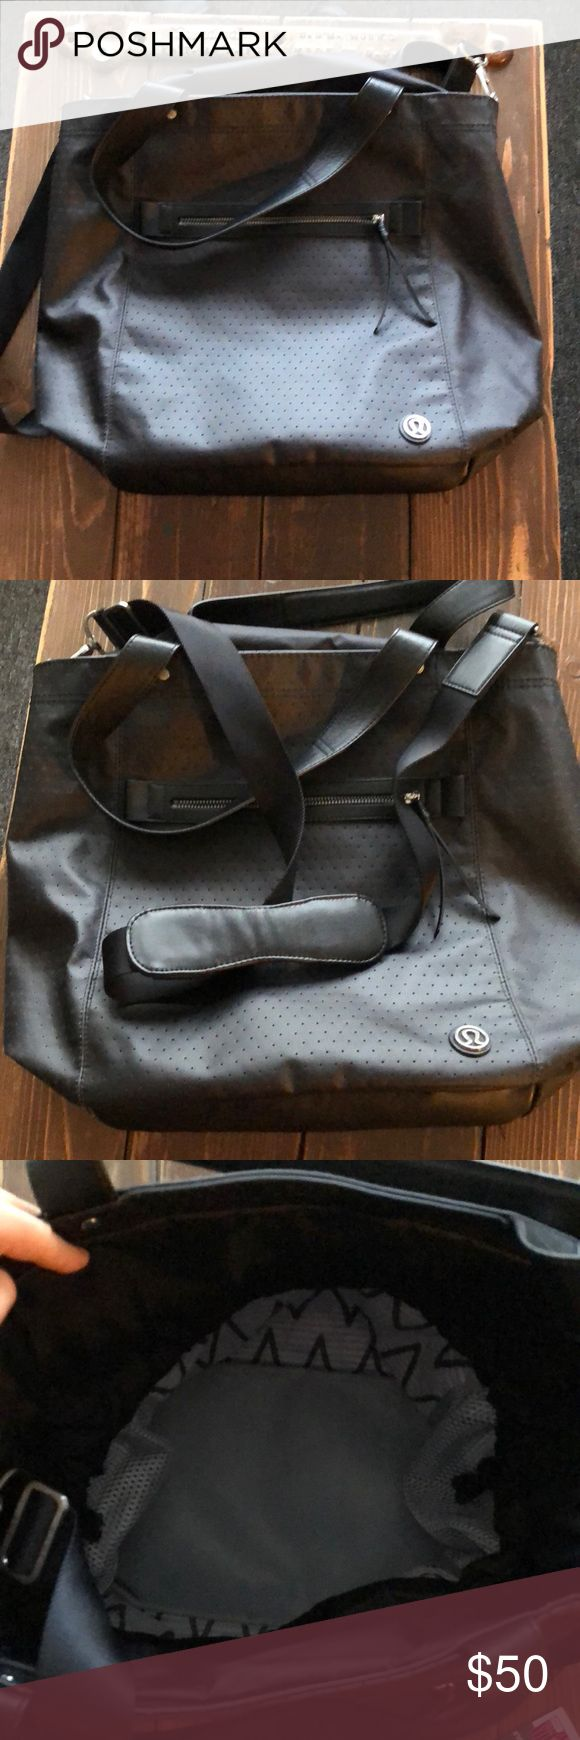 Over the shoulder Lululemon bag. This bag has a shoulder strap as well as regular arm straps. You can pull the strings to shut the bag to protect it from rain ect. Used for about a month, then purchased a different lululemon bag. lululemon athletica Bags Shoulder Bags